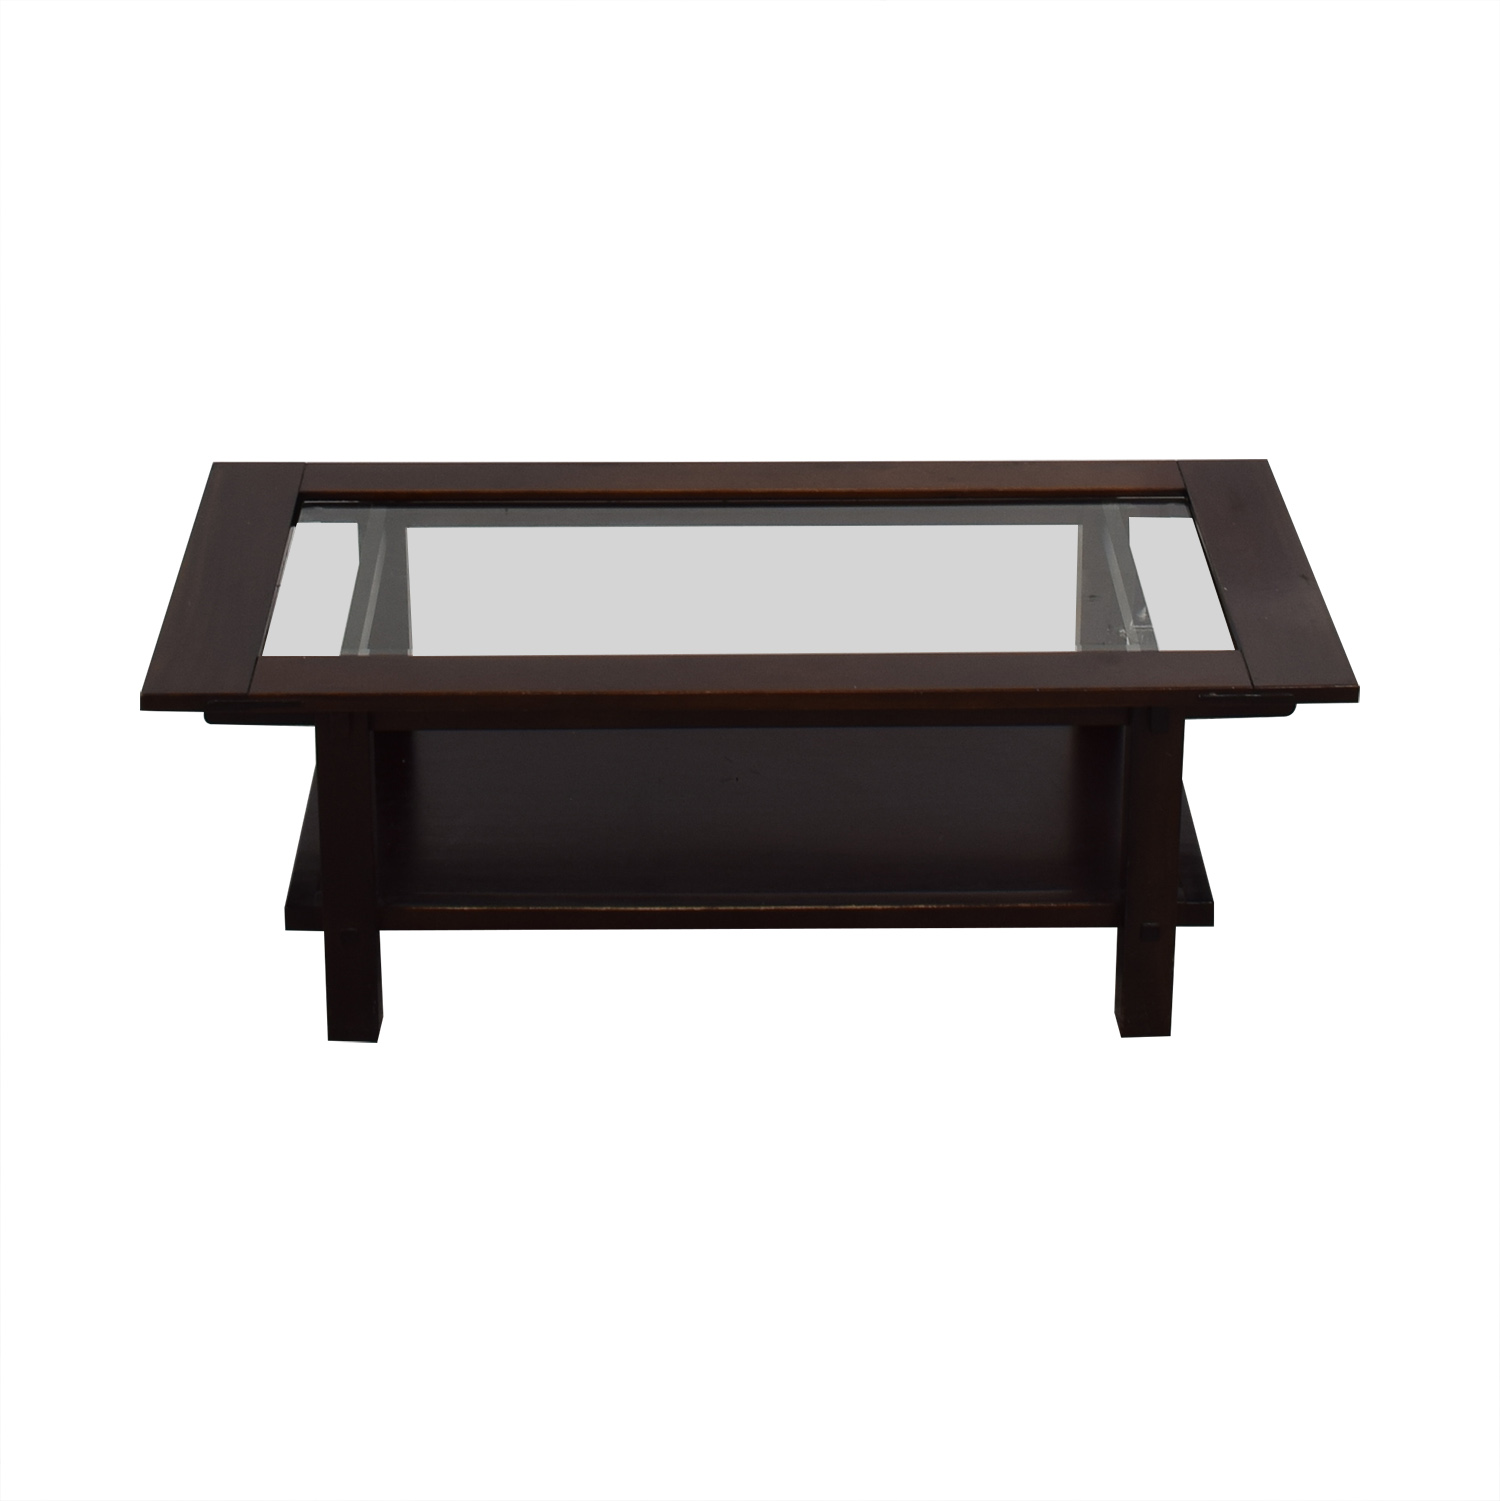 buy Crate & Barrel Brown Wooden Coffee Table Crate & Barrel Coffee Tables